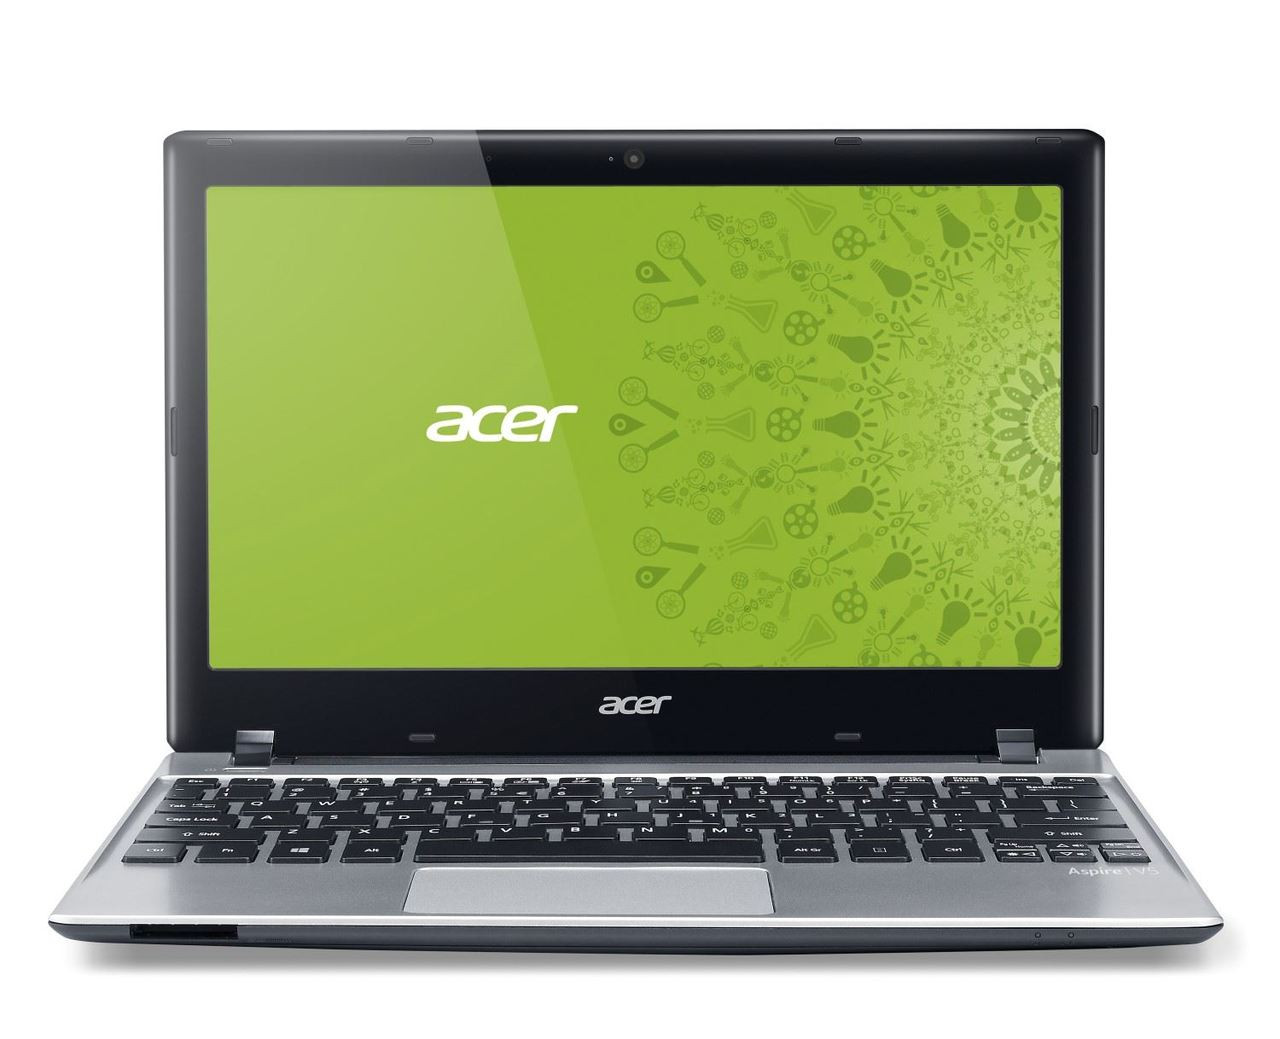 Acer Aspire V5-131 Broadcom WLAN Driver for Windows Mac